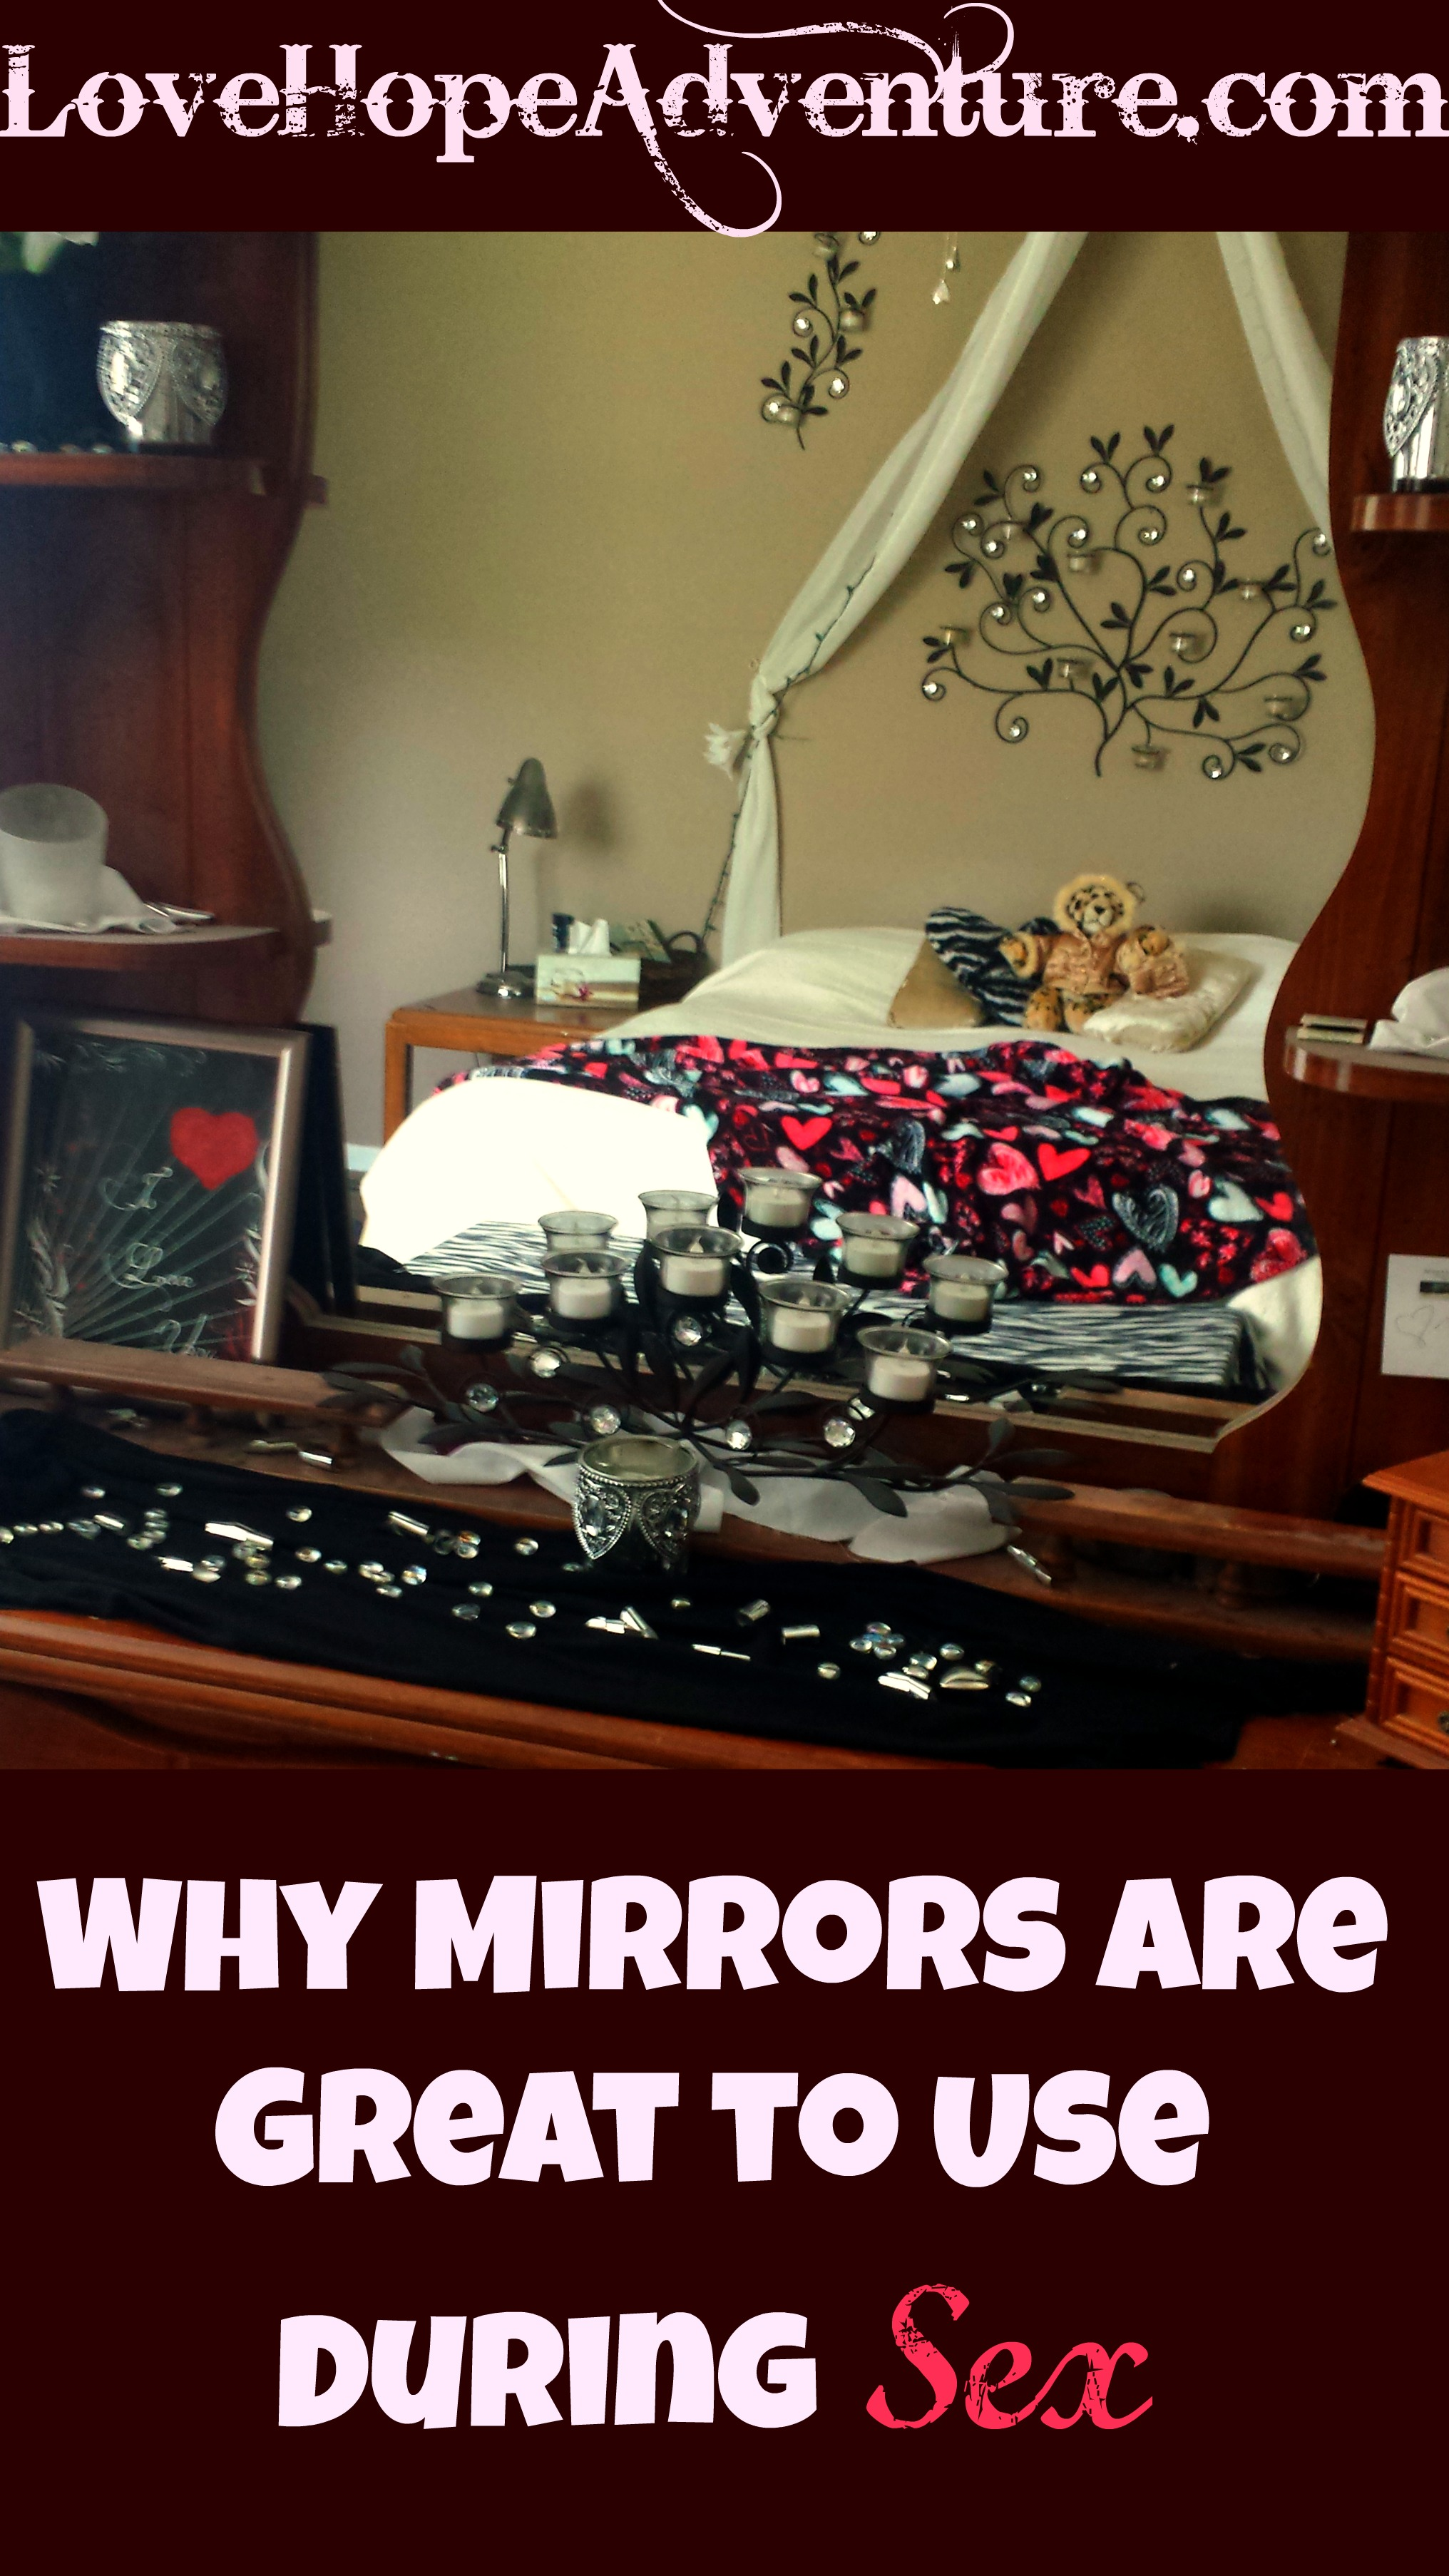 why mirrors are great to use during physical intimacy